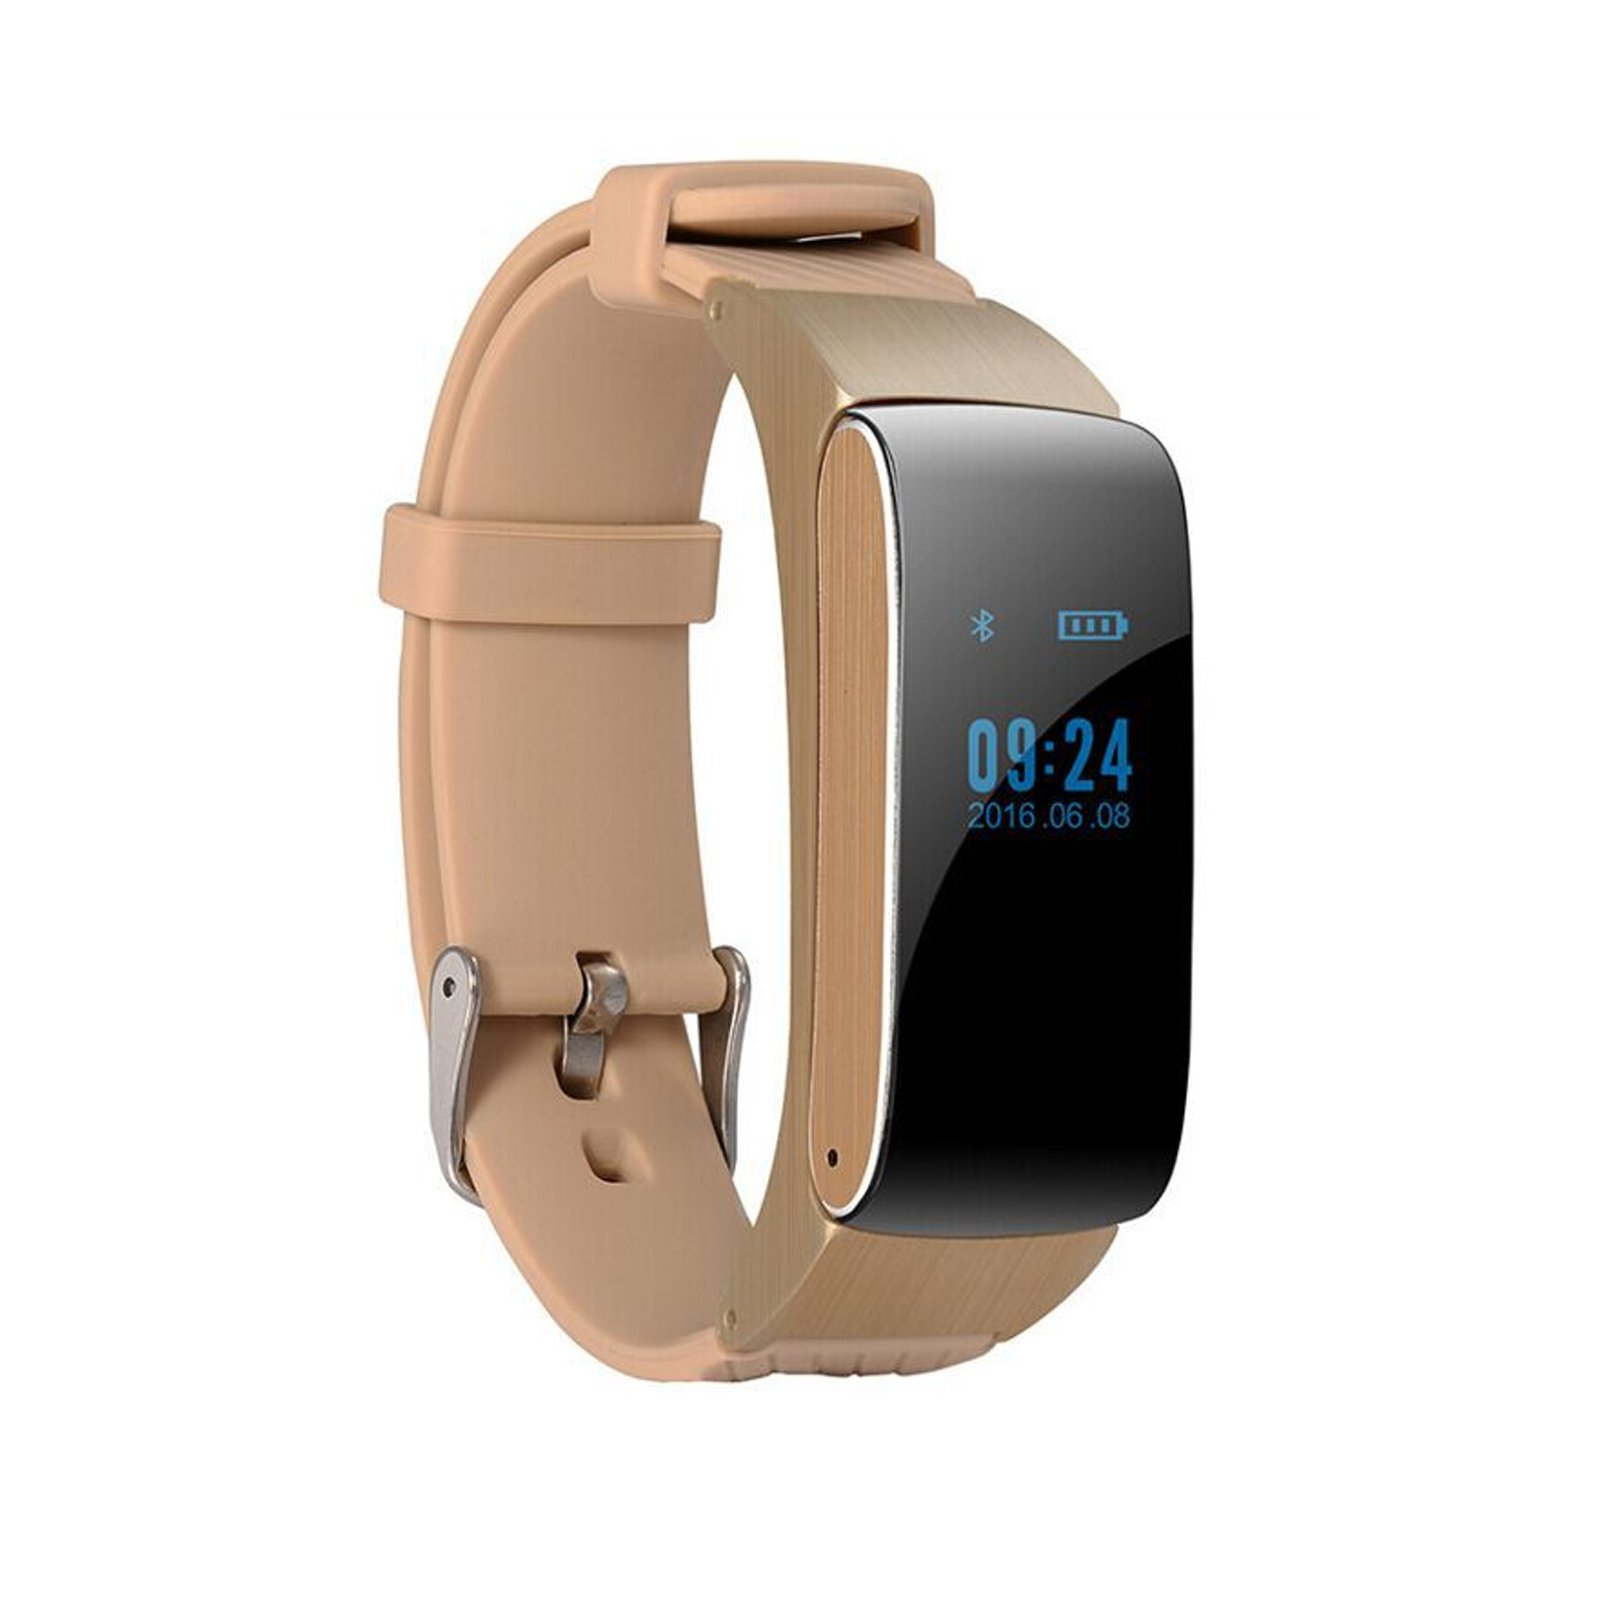 Fitness Tracker Watch for Android Pedometer Sleep Monitor Track Calories Burning 1 Watch 2 Use Easy Detachable Bluetooth Headset Phone Mate Sync Phone Message from Facebook Twitter What's APP(Pink)